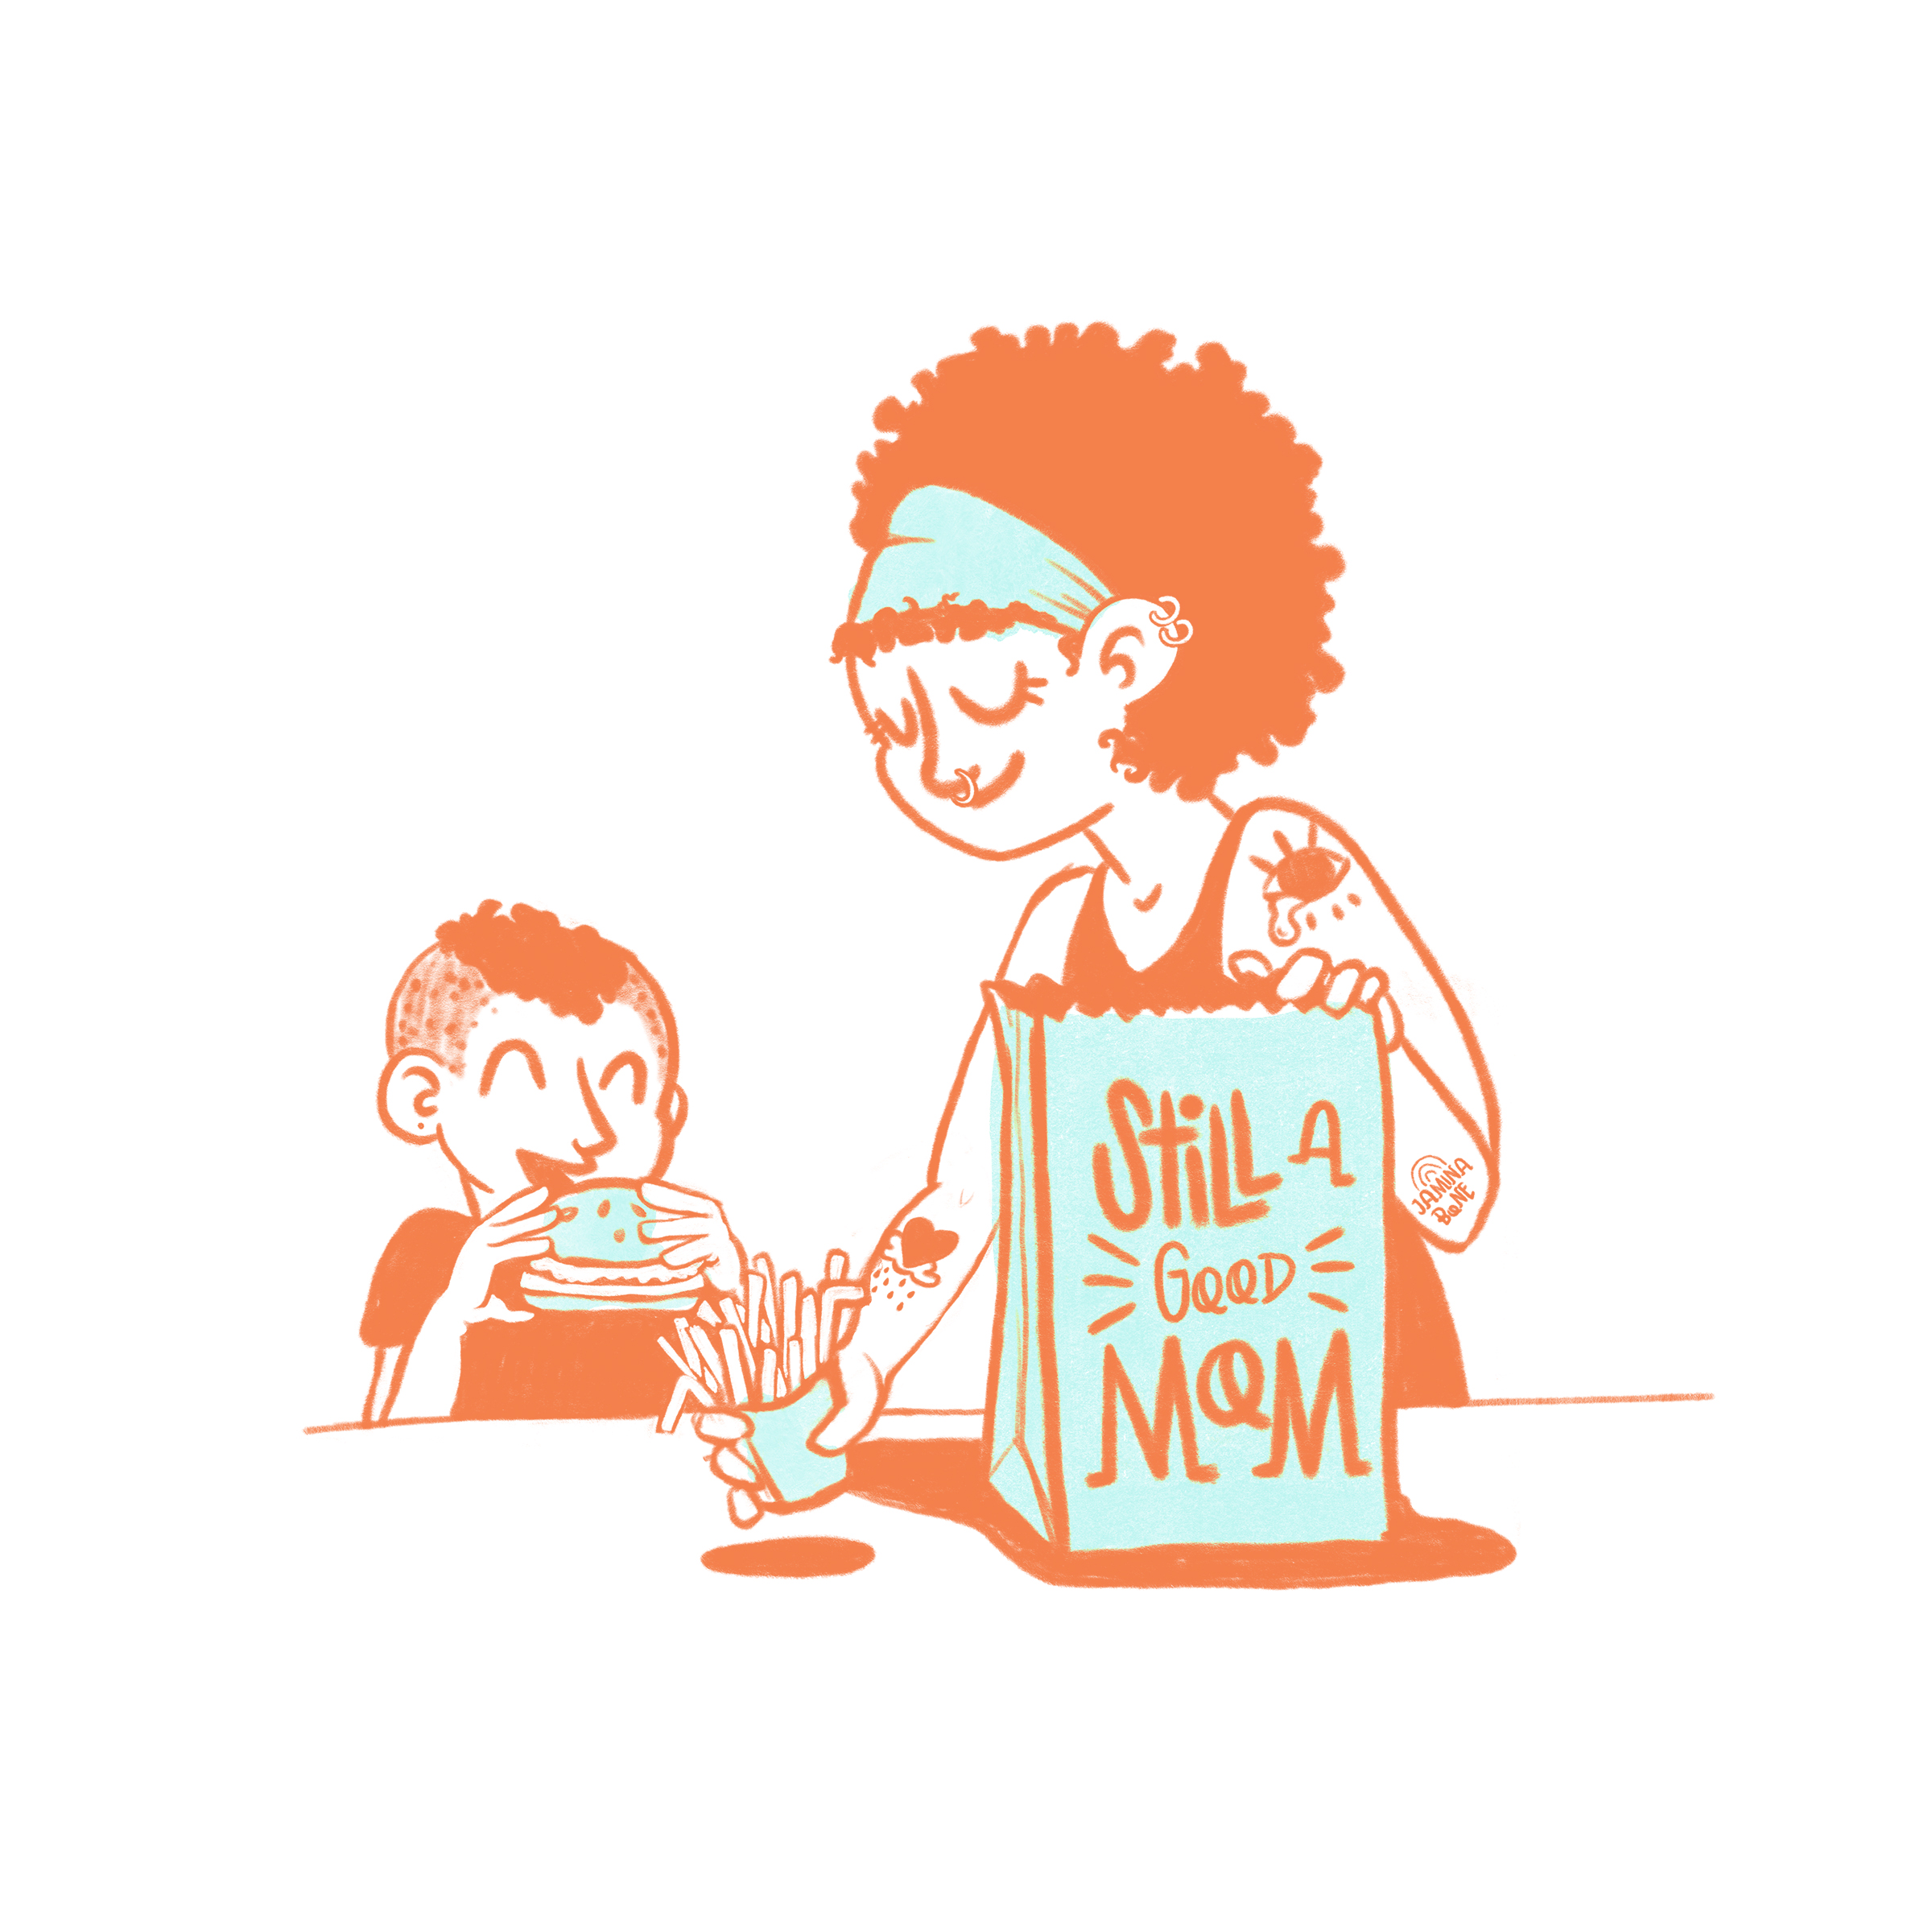 Select Still a Good Mom prints Available NOW! - Limited Number Available